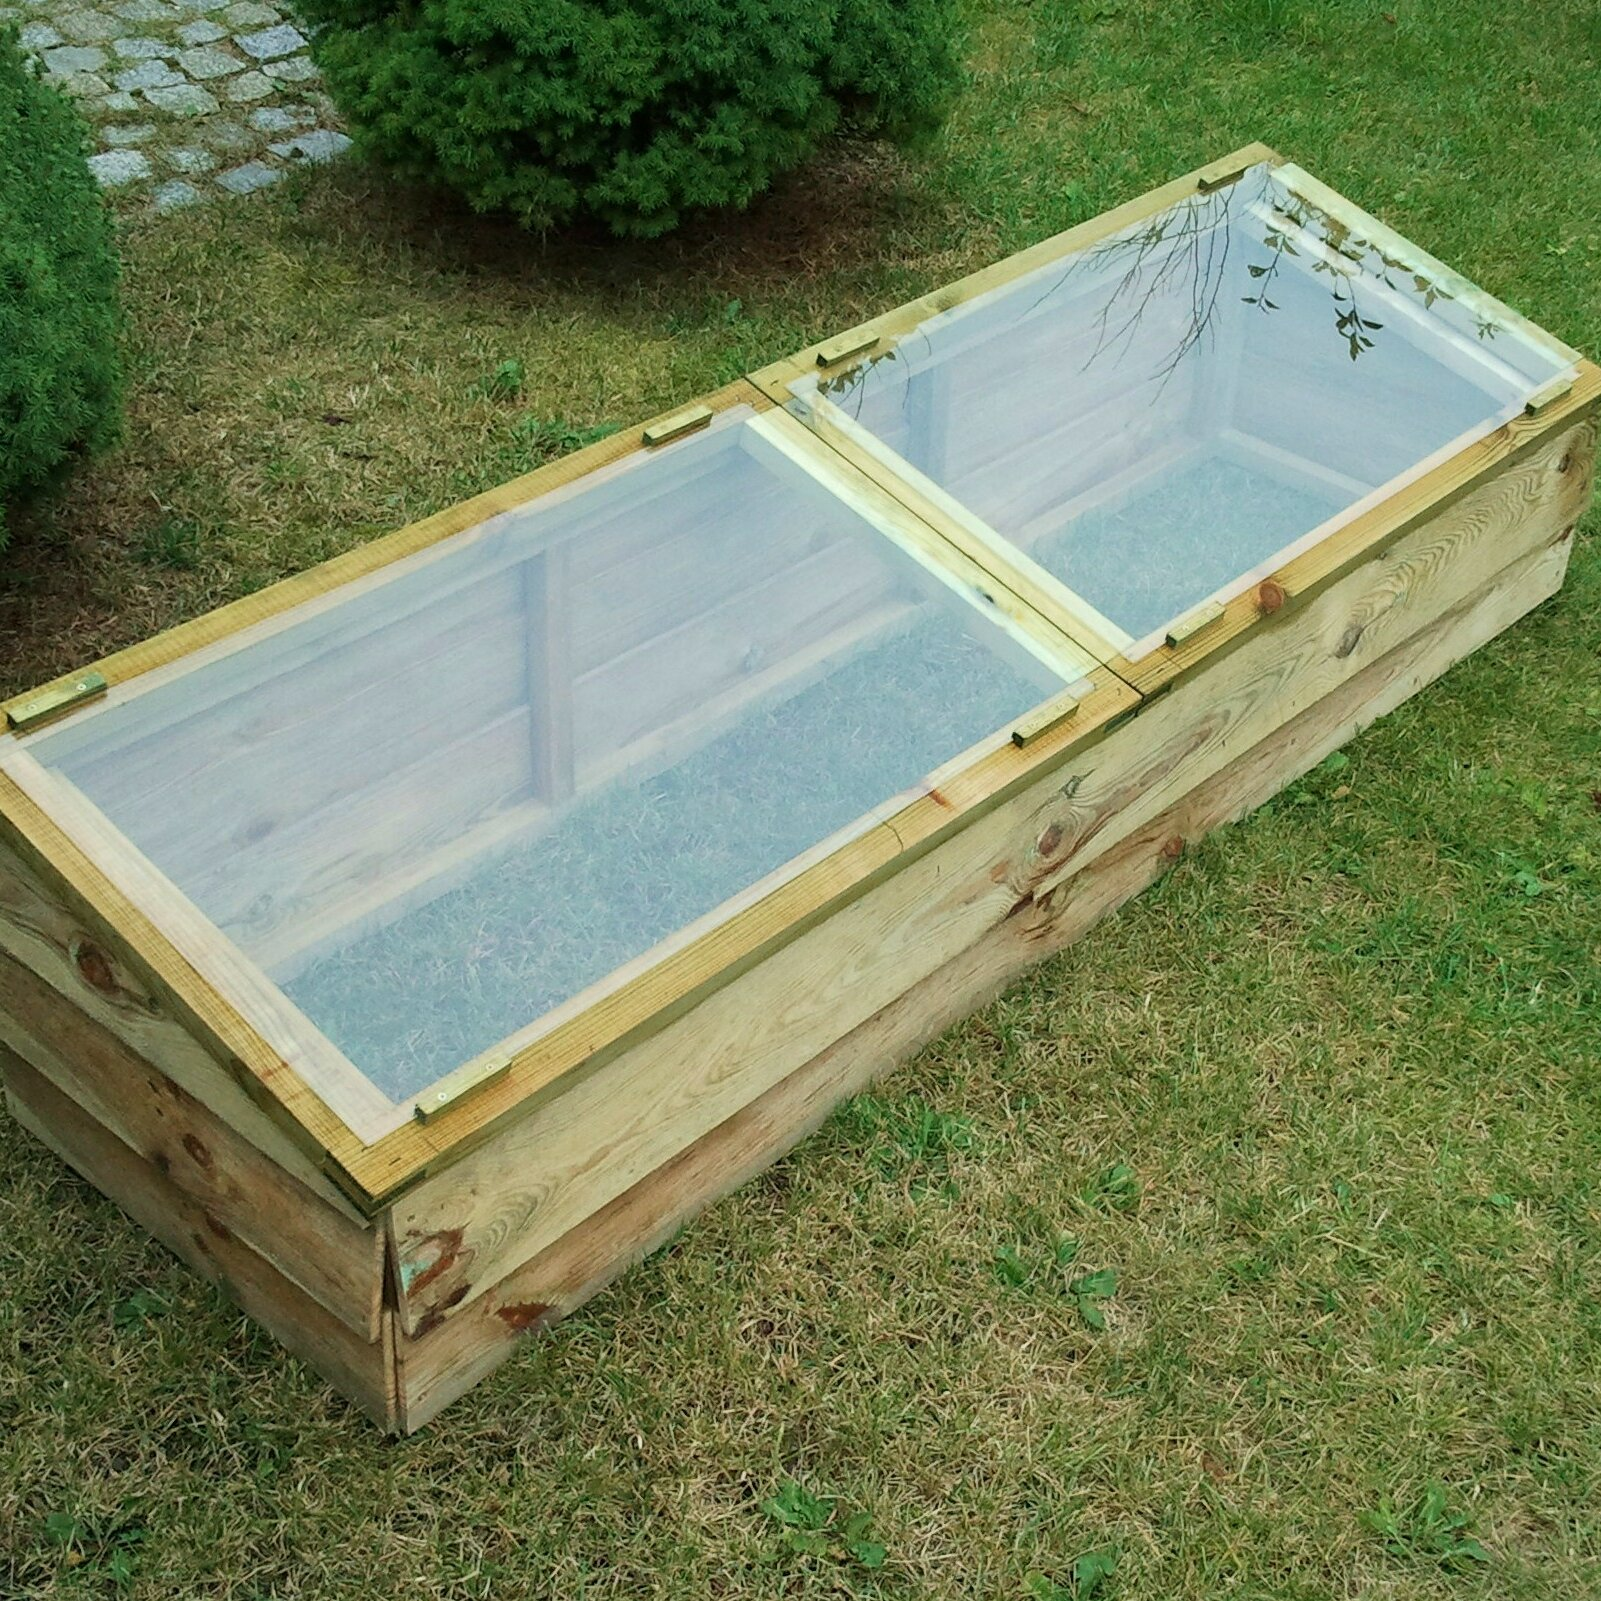 Zest 4 Leisure 1.7m W x 0.5m D Cold Frame Greenhouse & Reviews ...